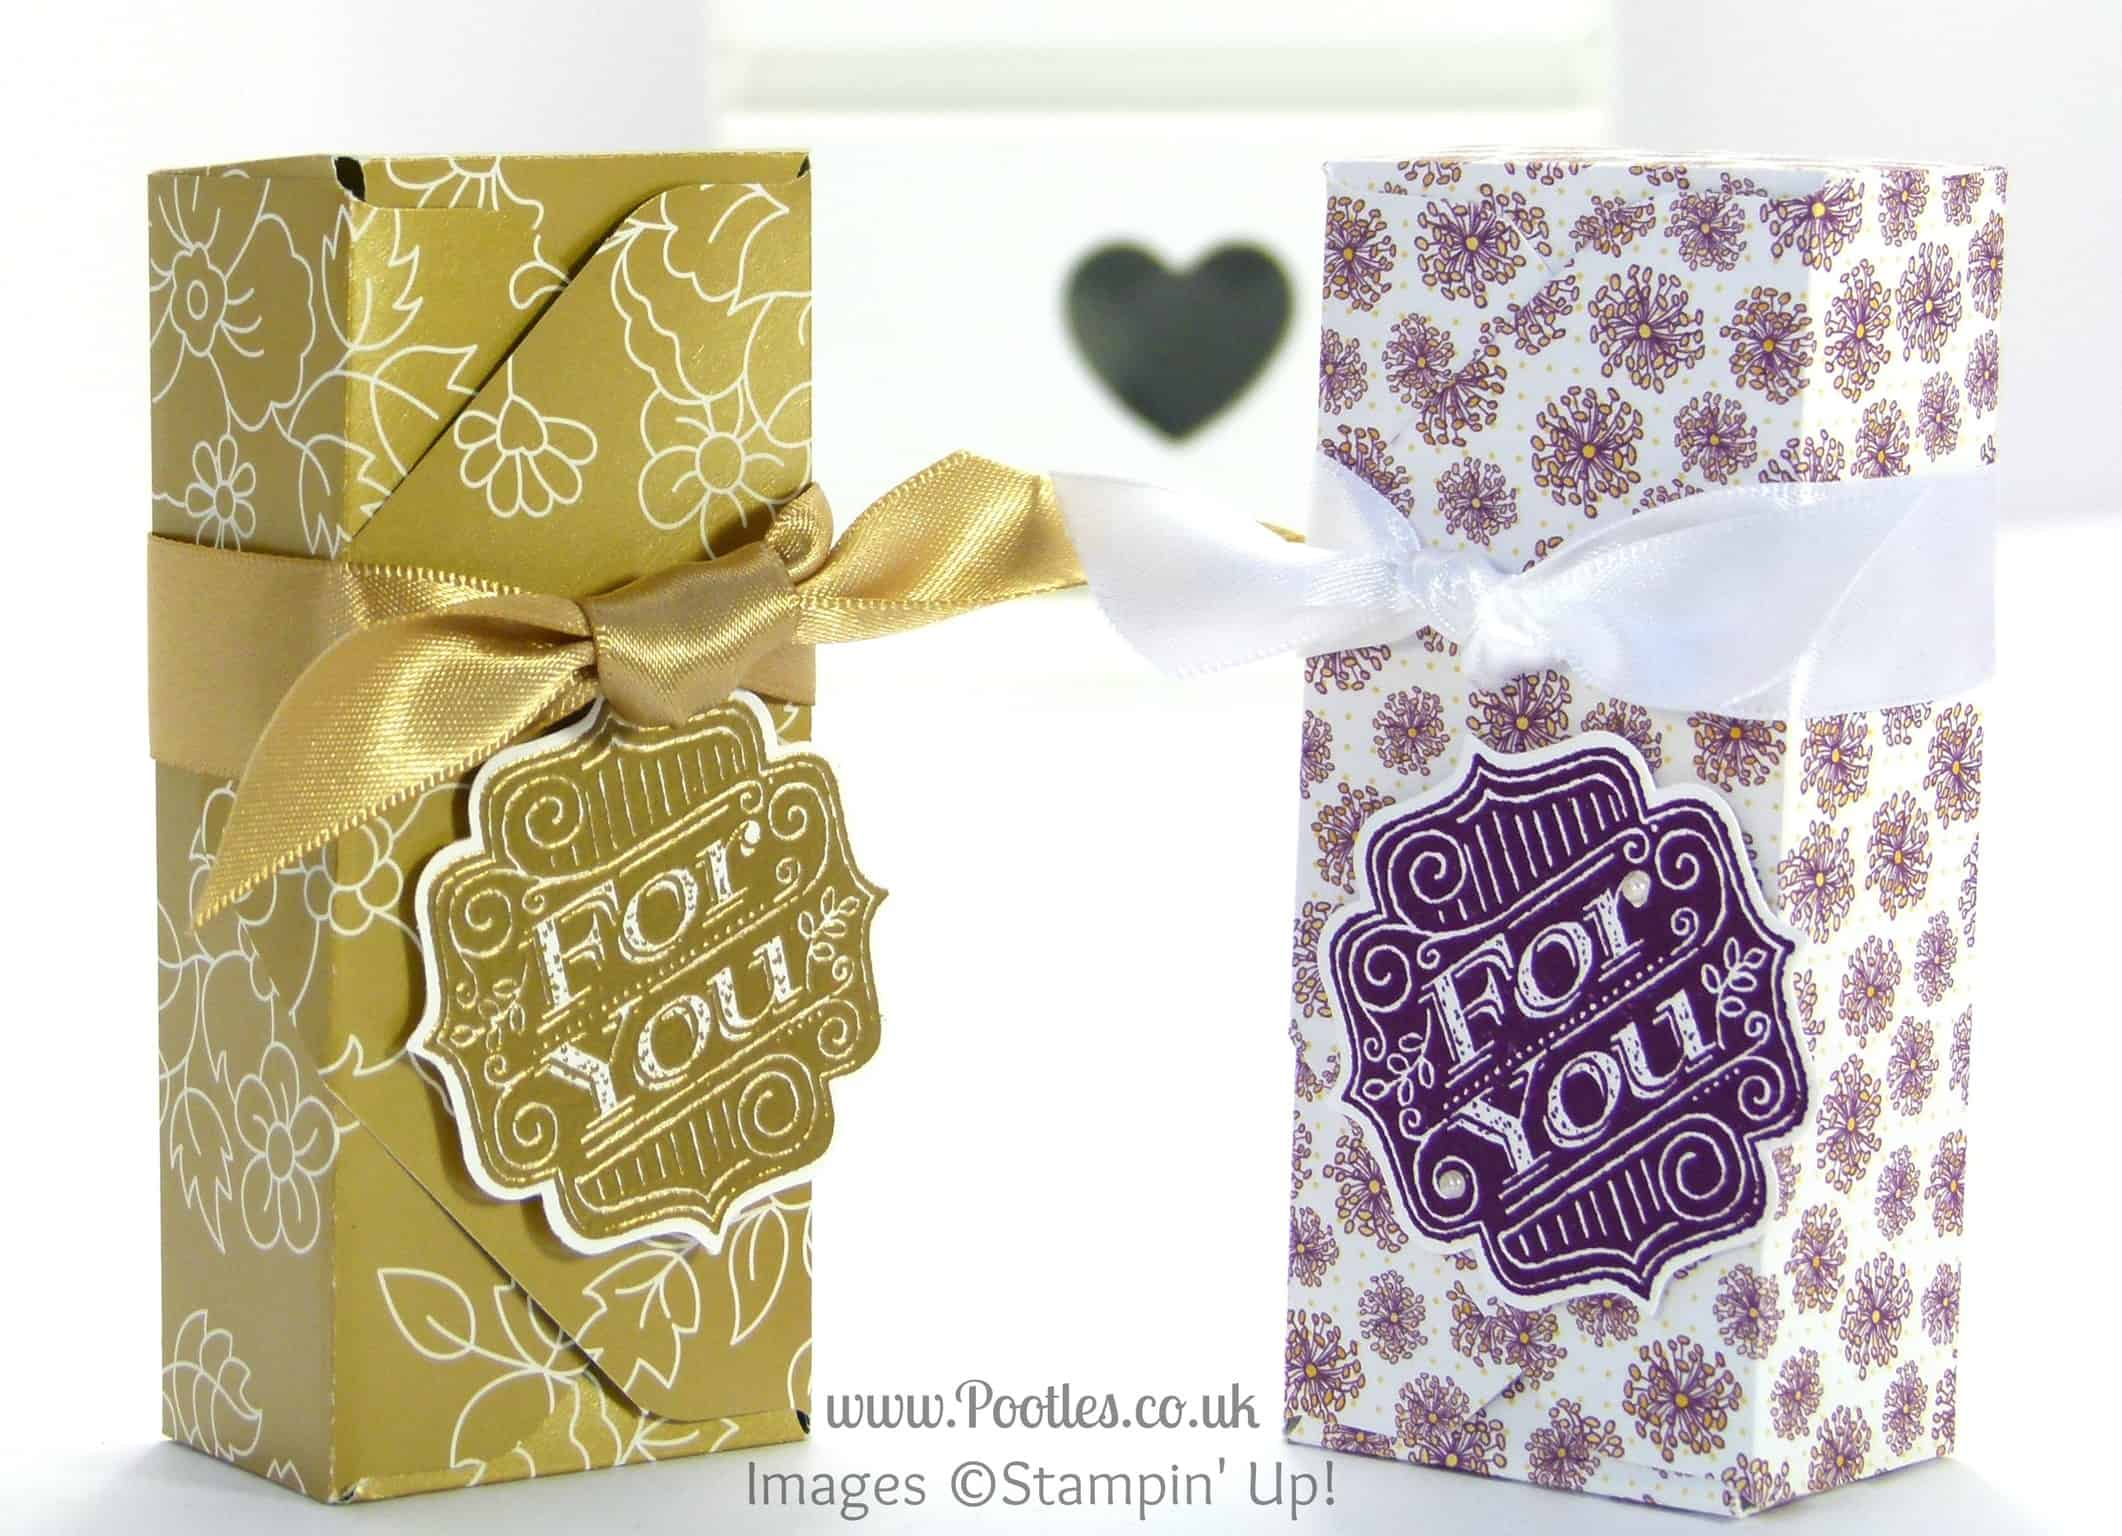 Stampin' Up! UK Demonstrator Pootles - 6x6 Envelope Punch Board Box Tutorial